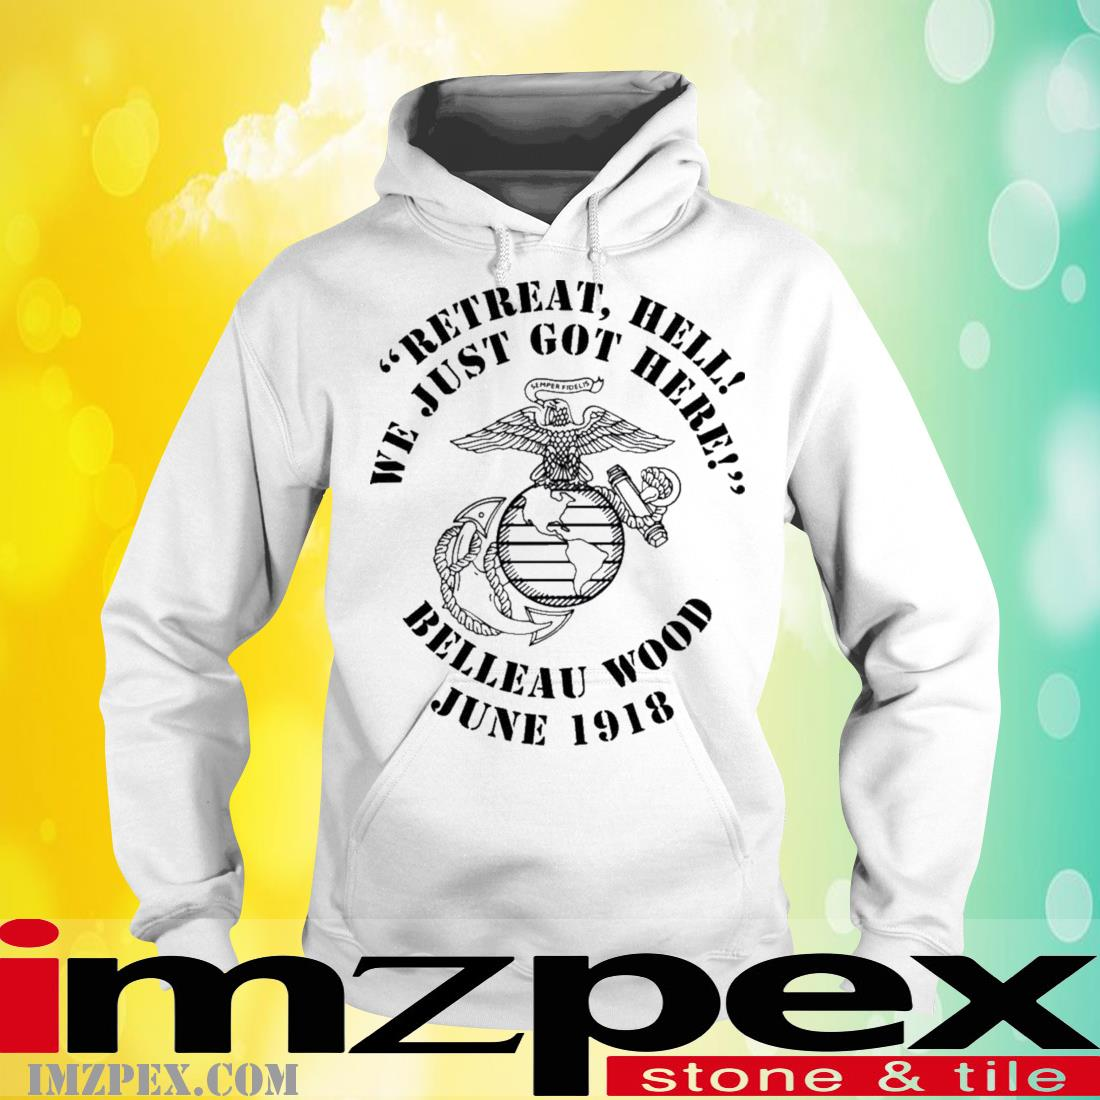 Eagle, Globe, And Anchor Retreat Hell We Just Got Here Belleau Wood June 1918 Shirt hoodie